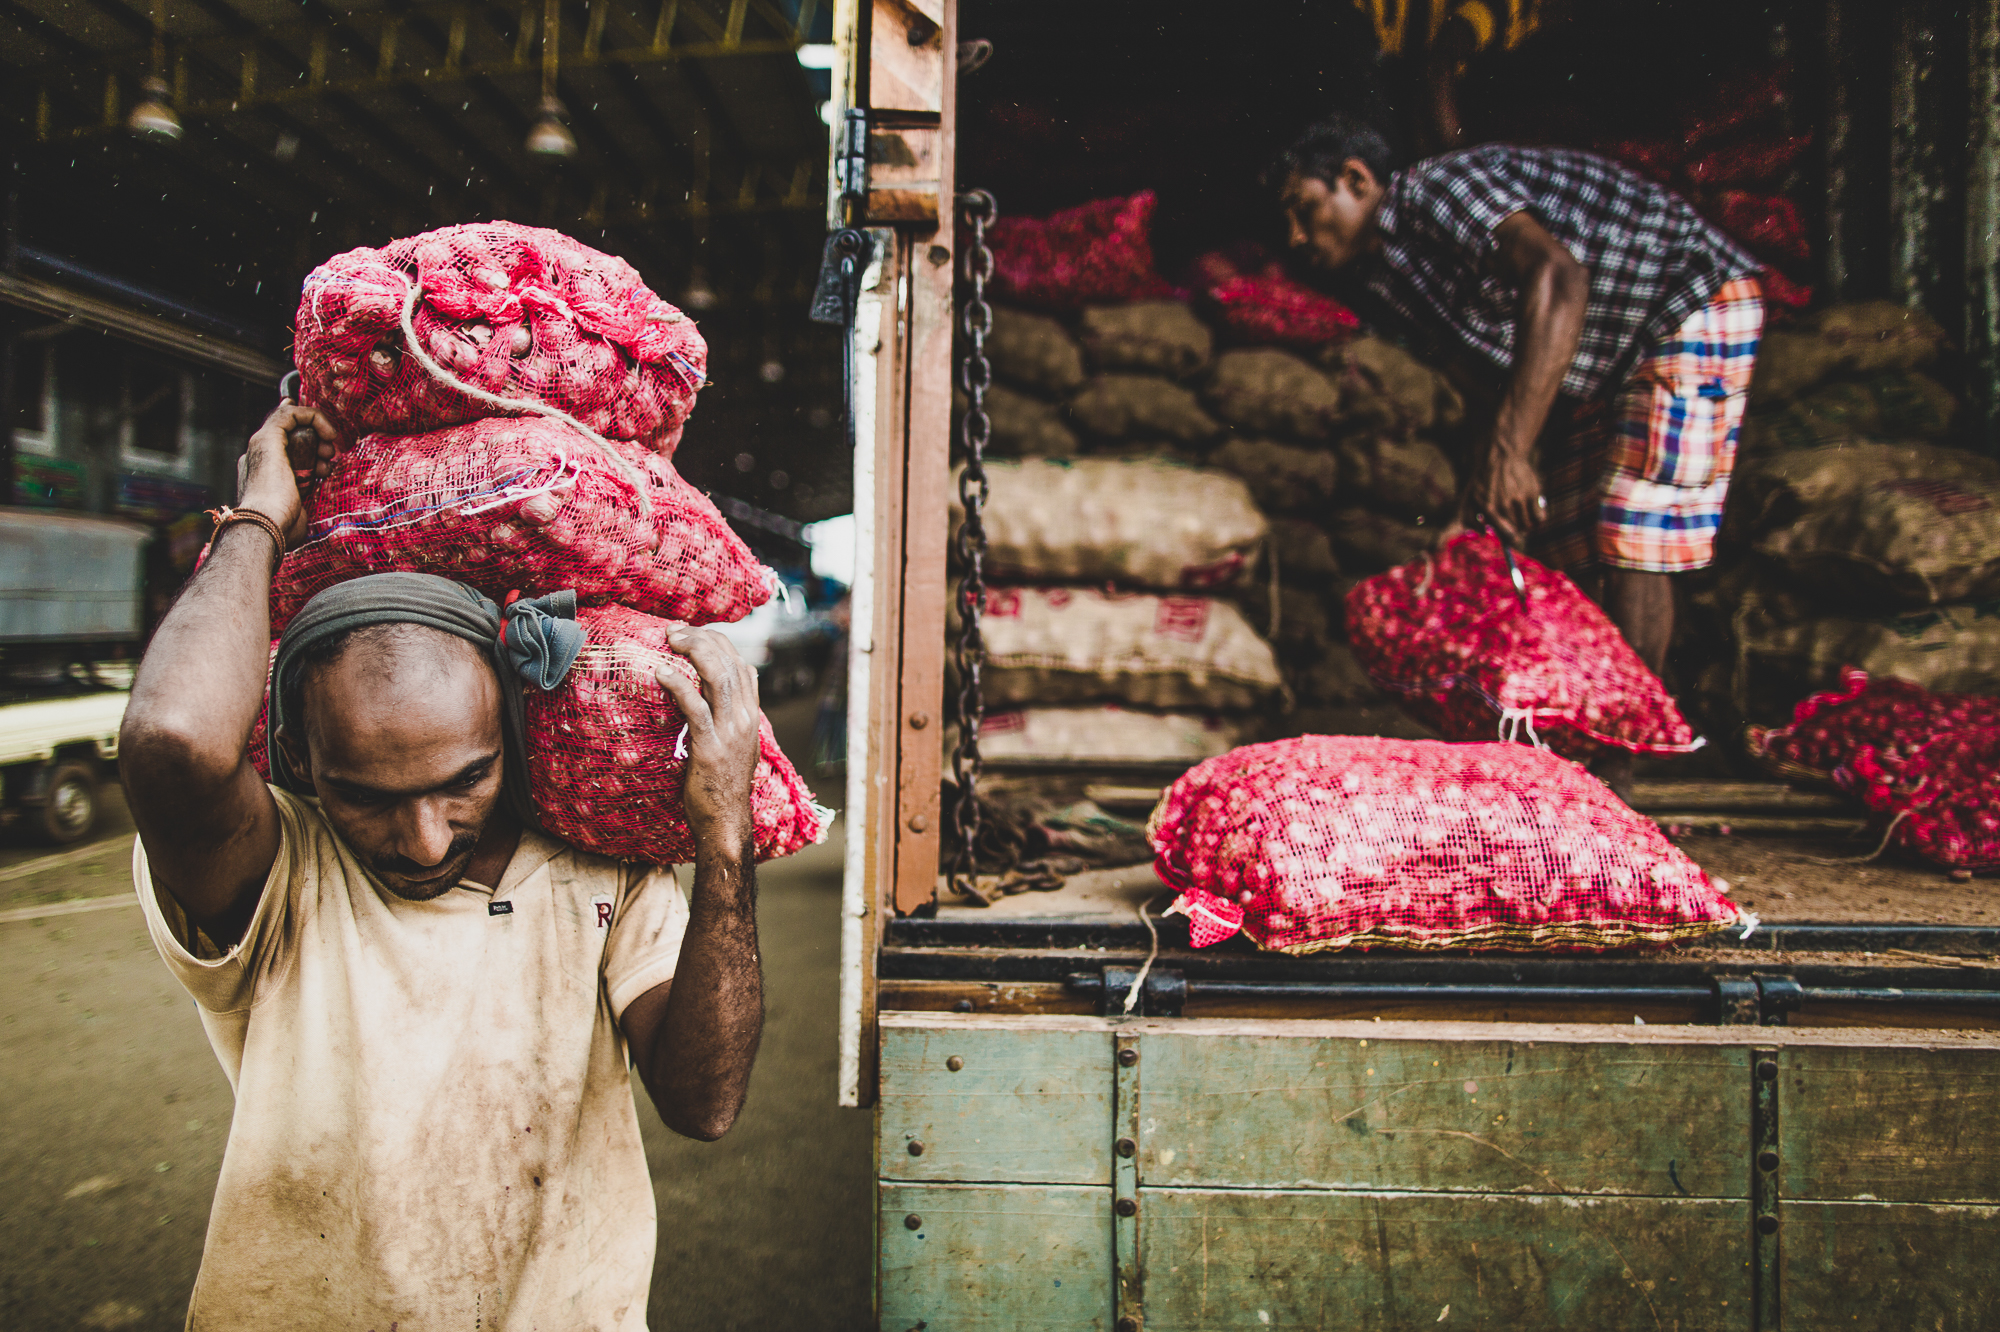 Unloading a truck of shallots